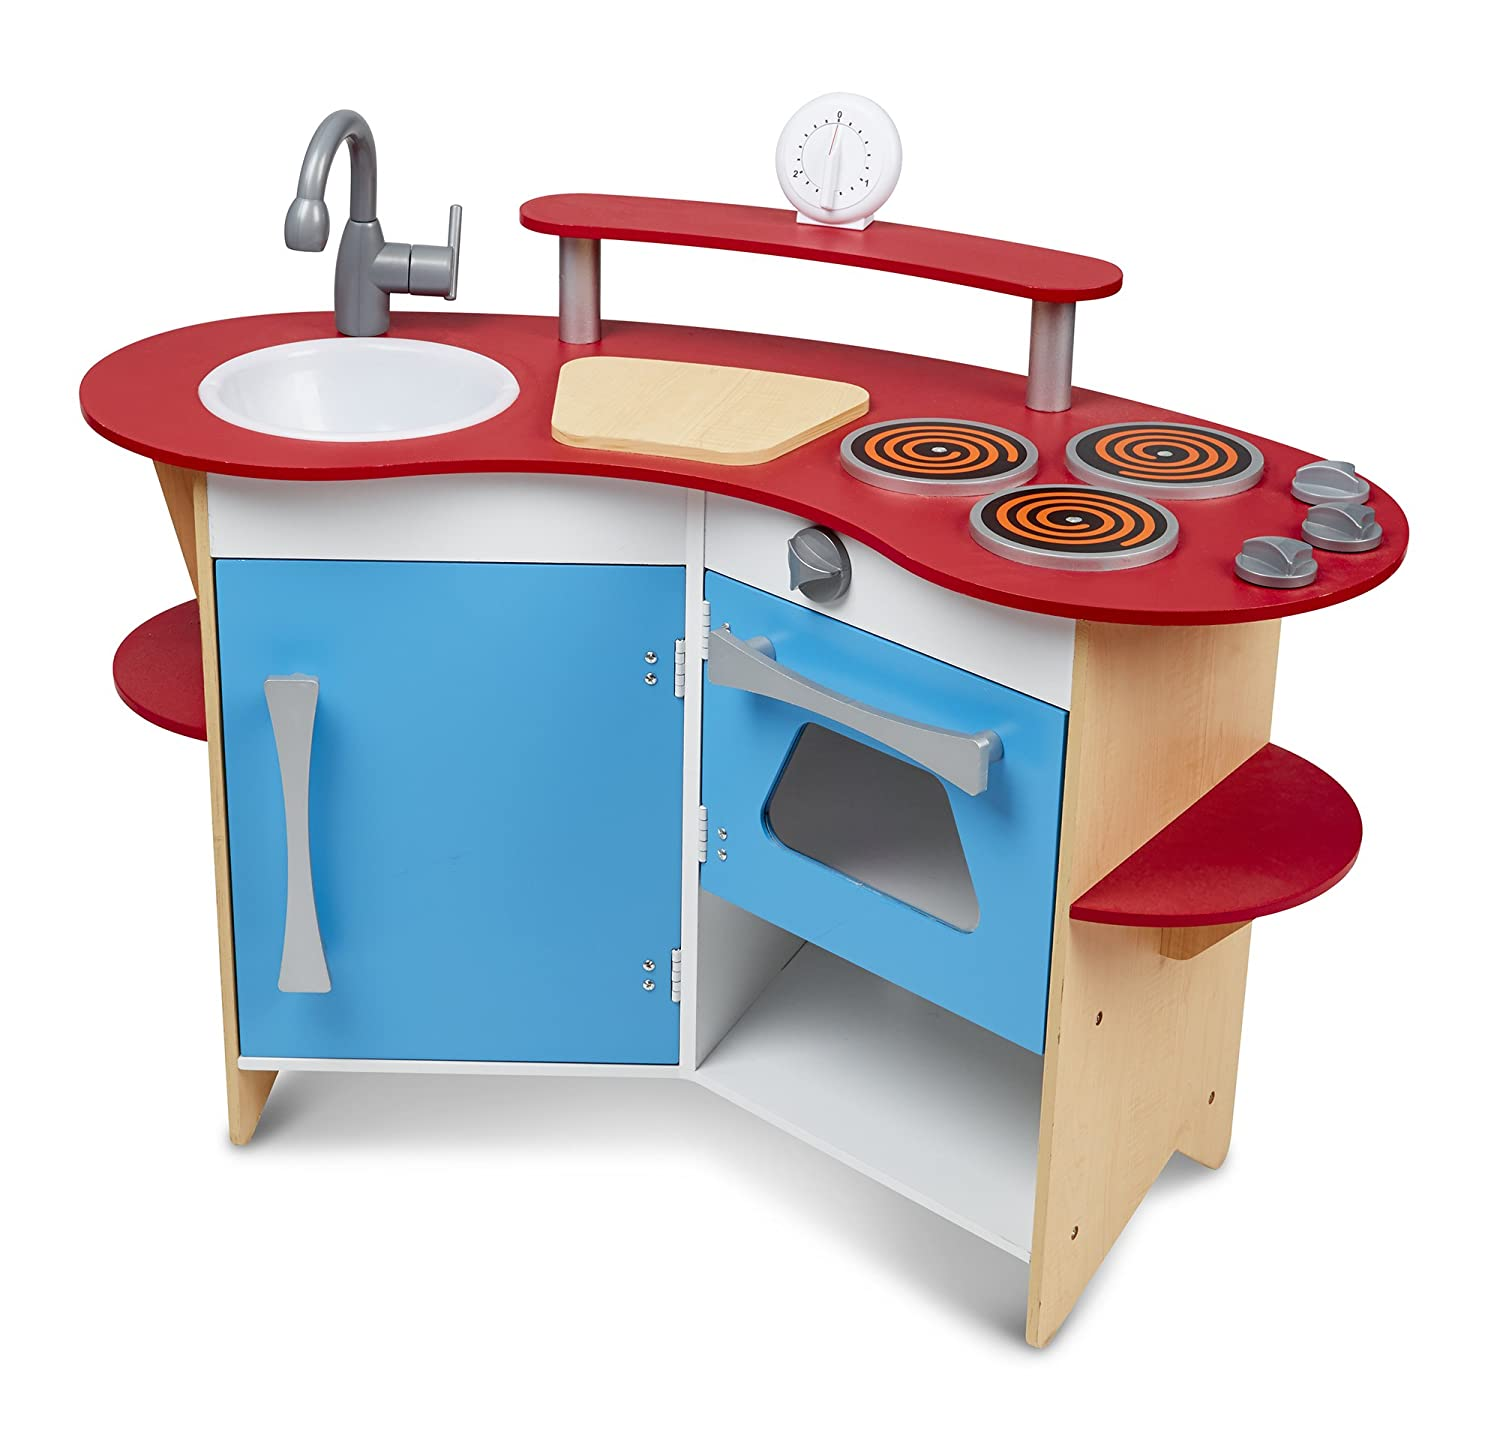 Amazon.com: Melissa & Doug Cook\'s Corner Wooden Pretend Play Toy ...